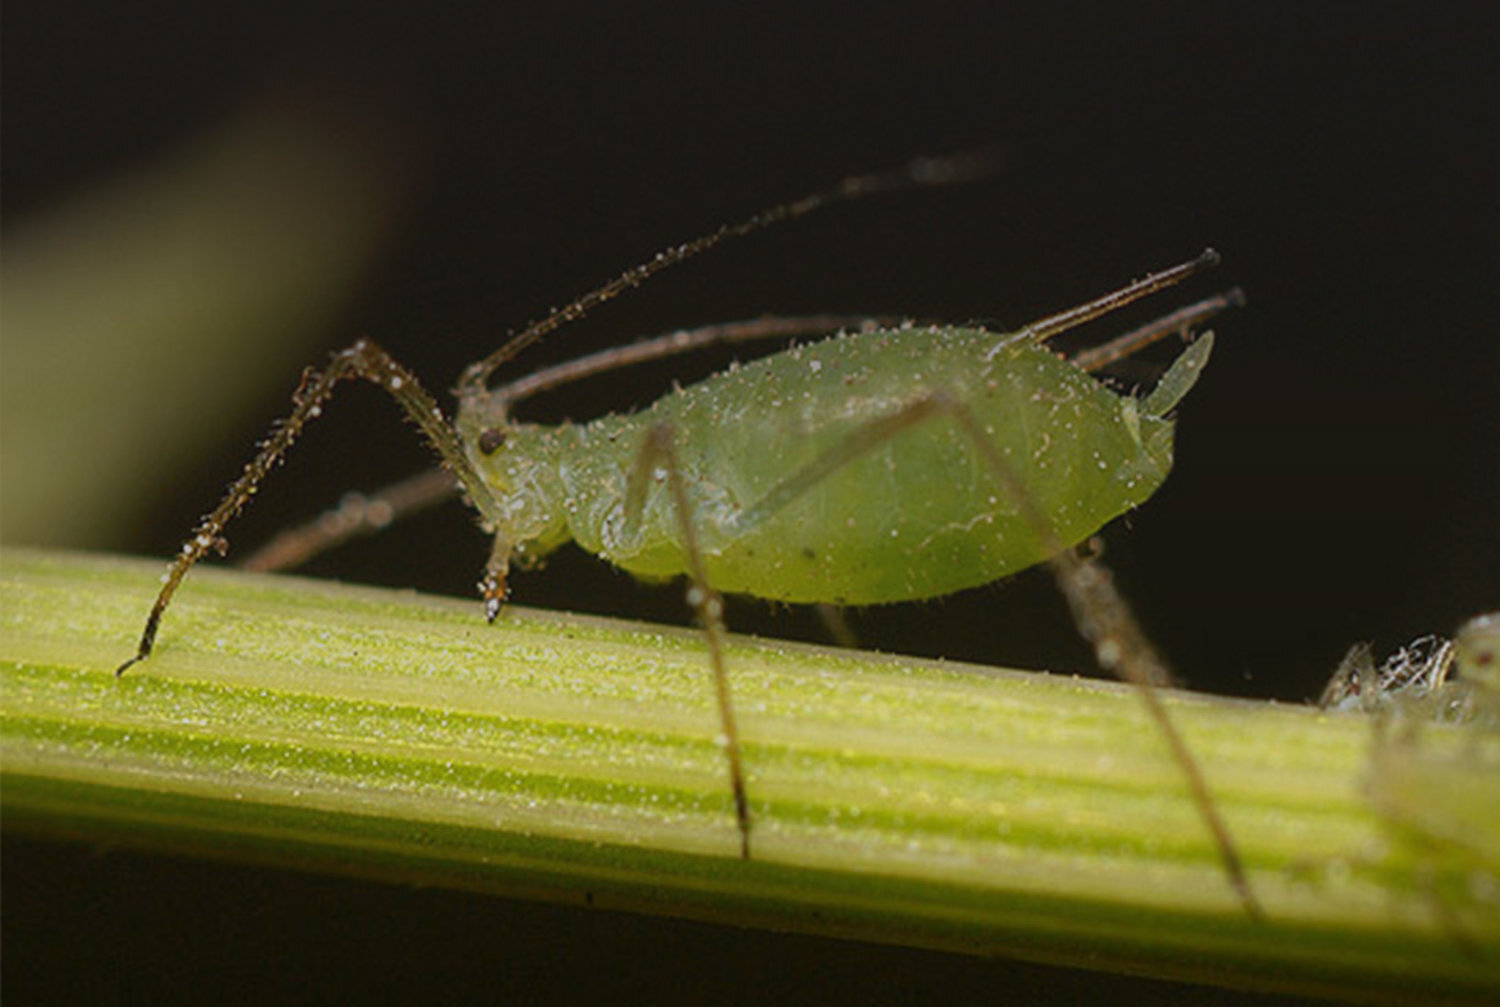 APHIDS CAN REPRODUCE WITHOUT FERTILIZATION DURING SUMMER